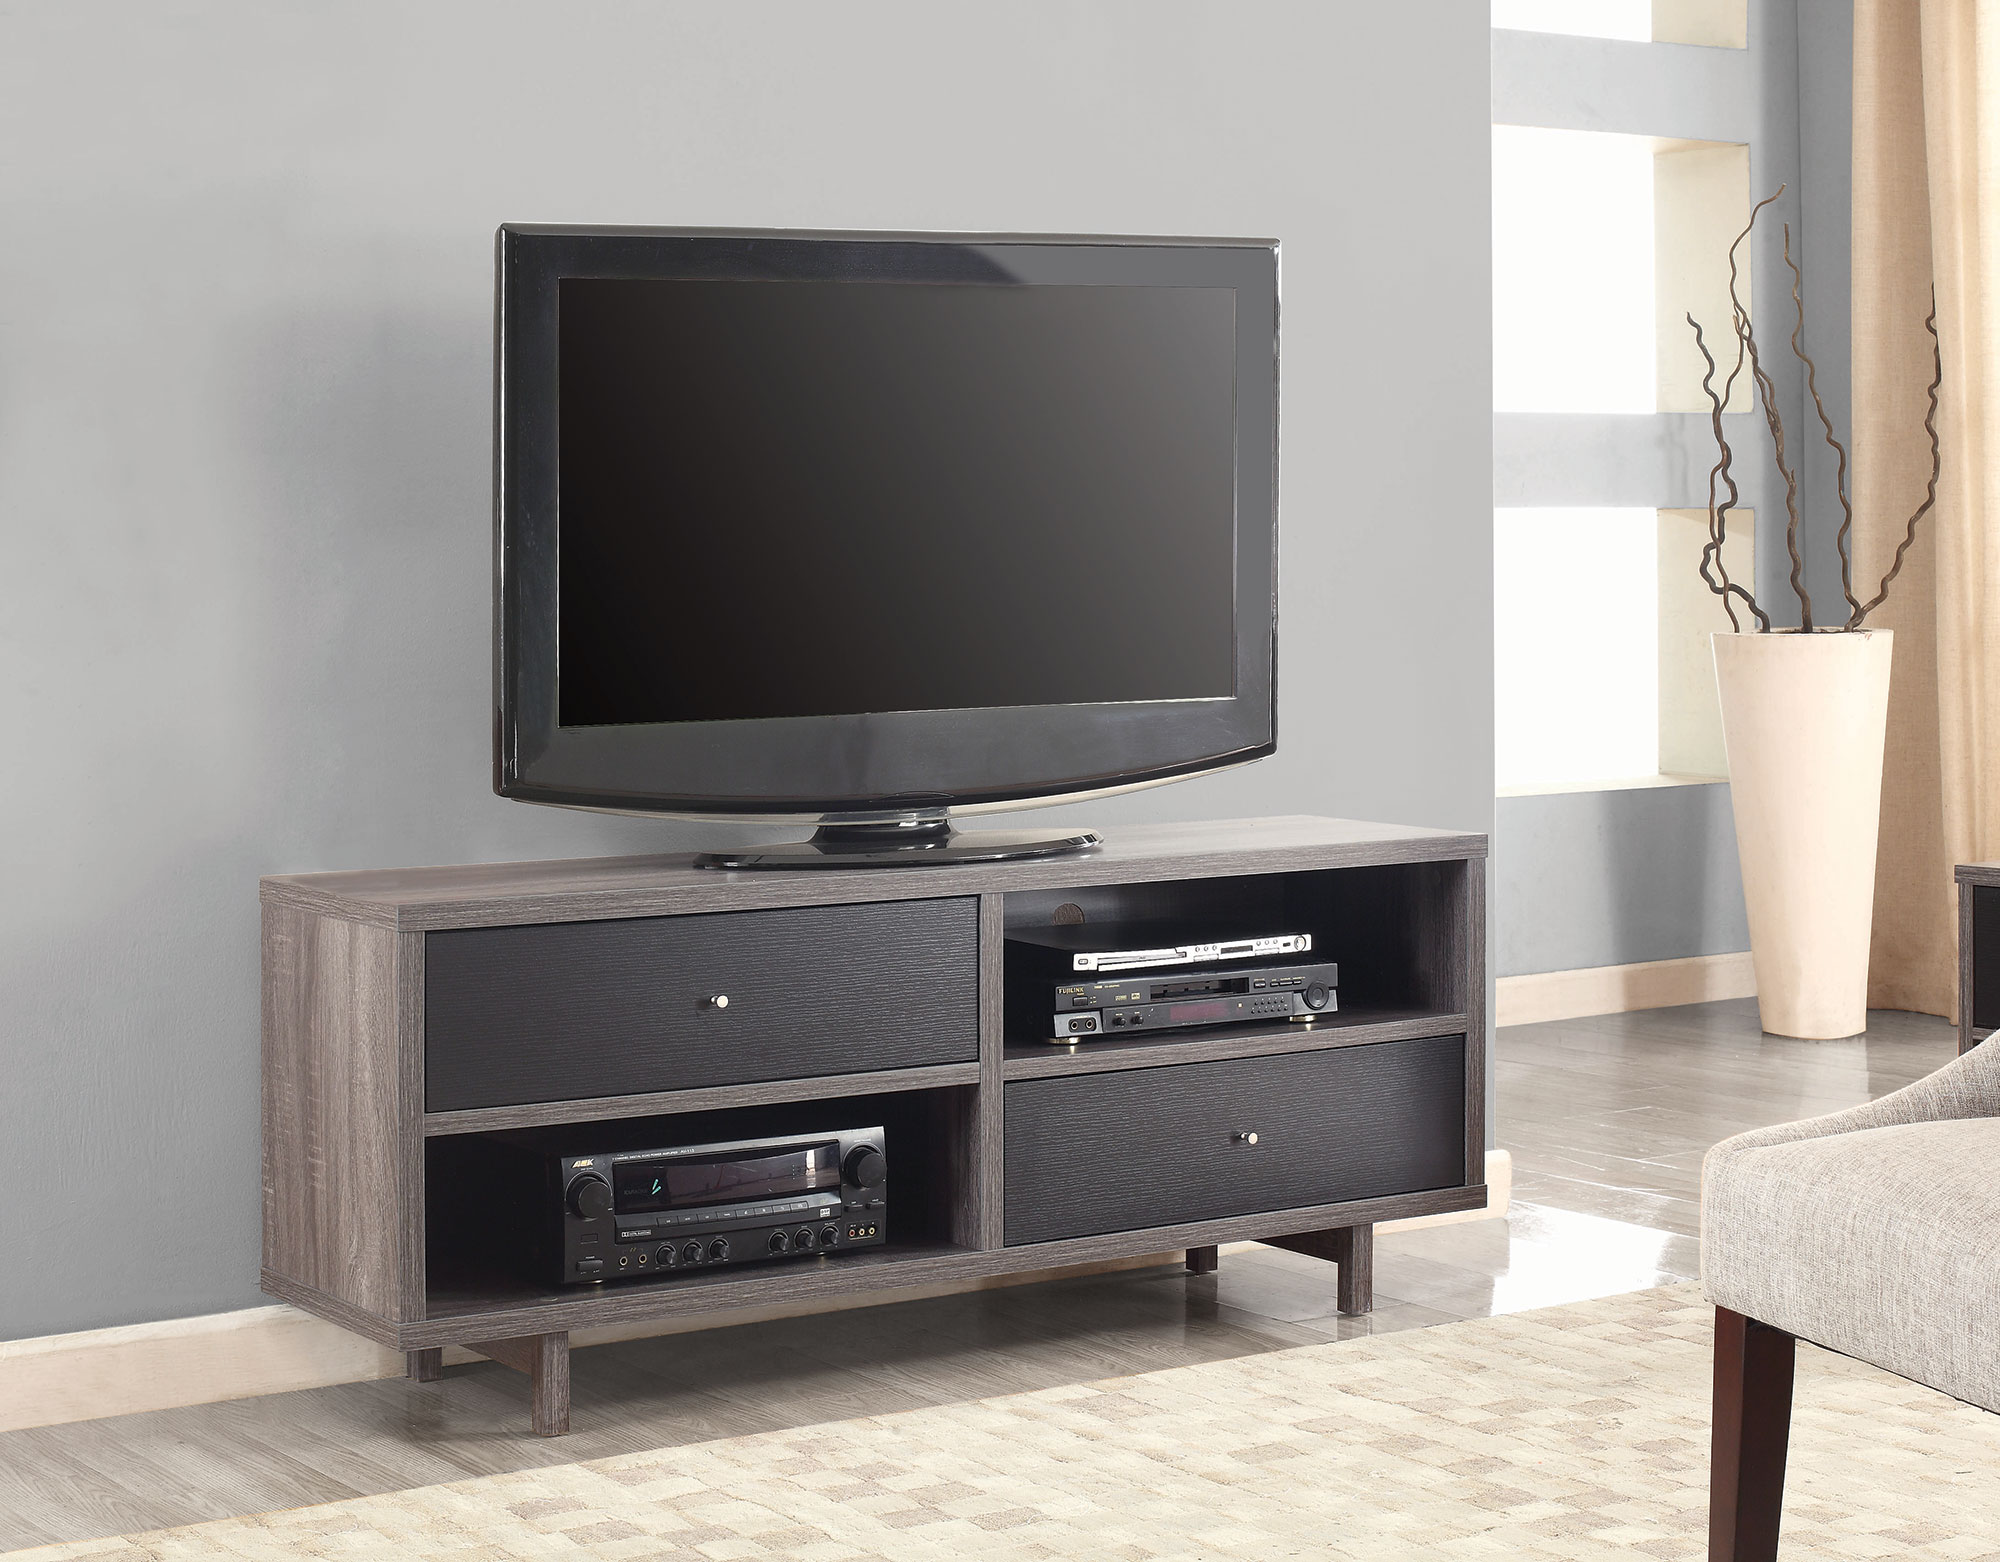 Distress GreyBlack TV Stand Las Vegas Furniture Store